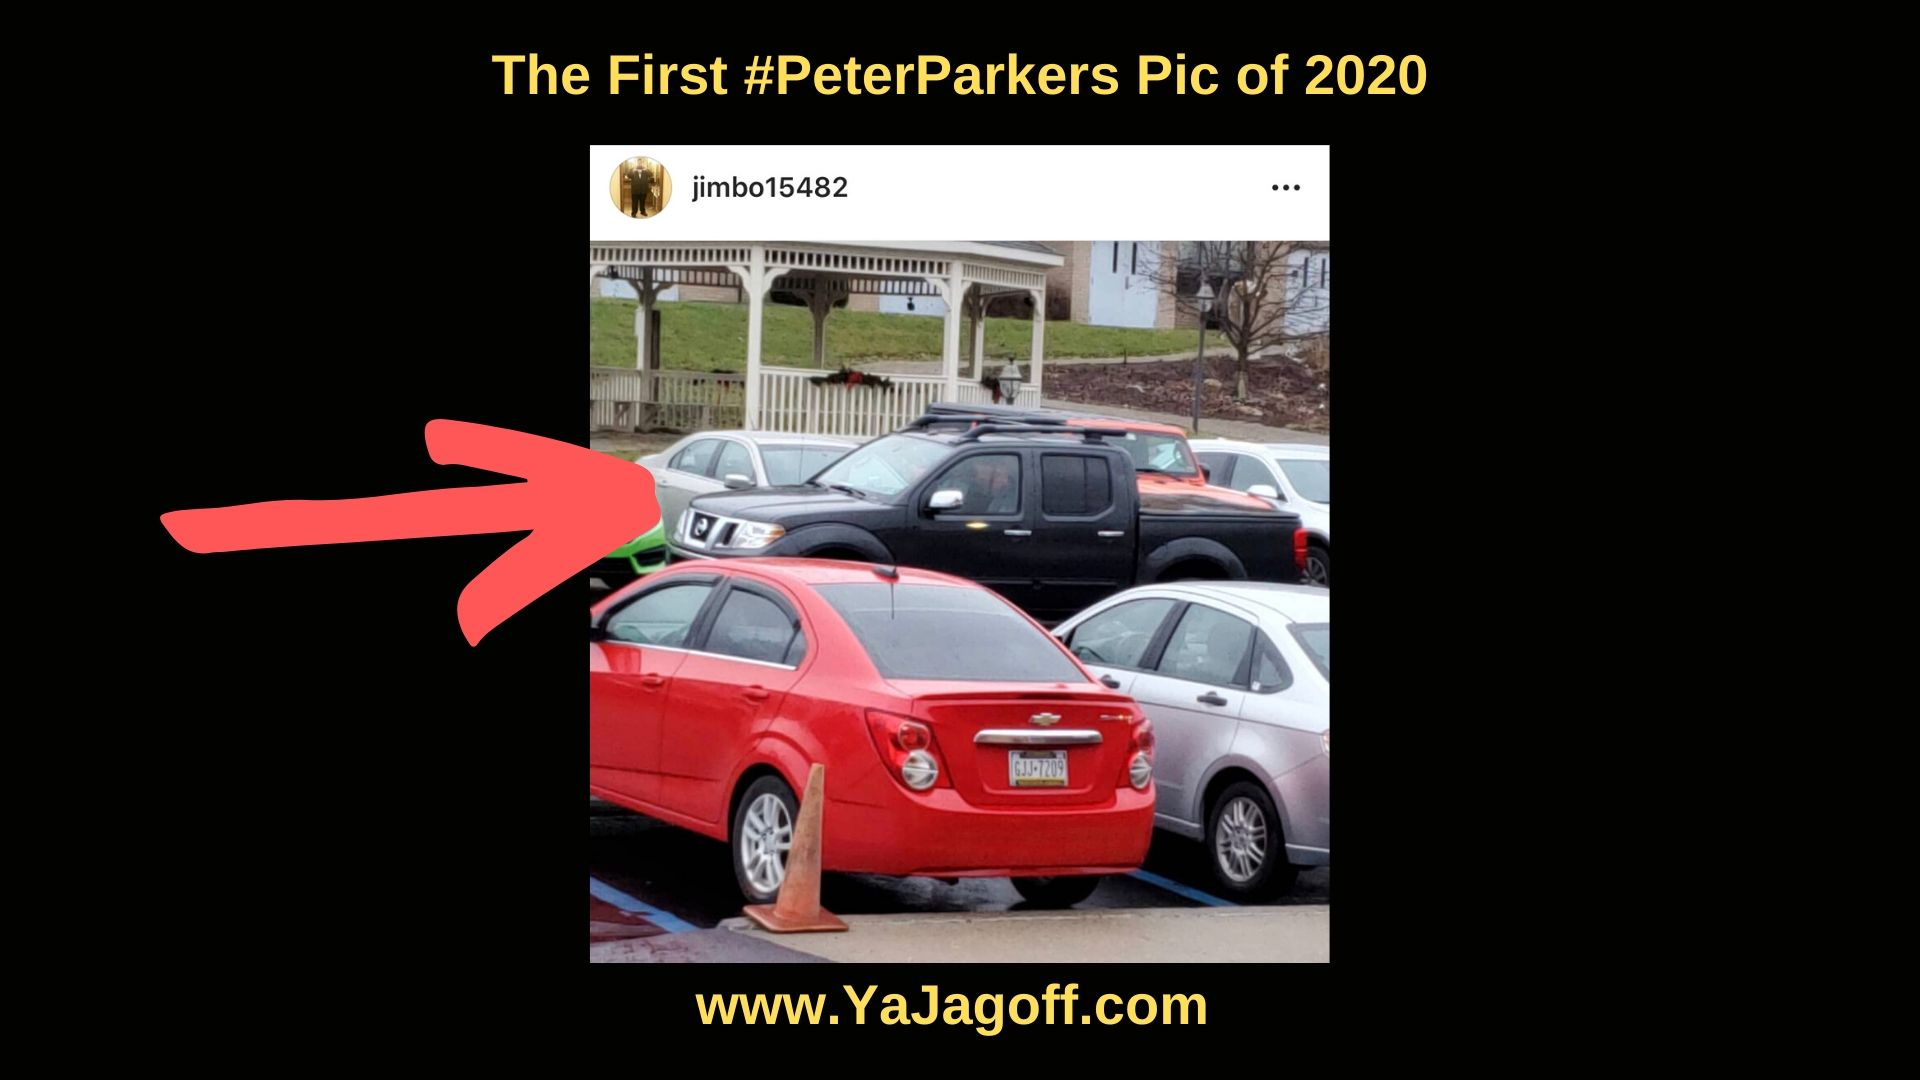 Jagoff Parking #PeterParkers